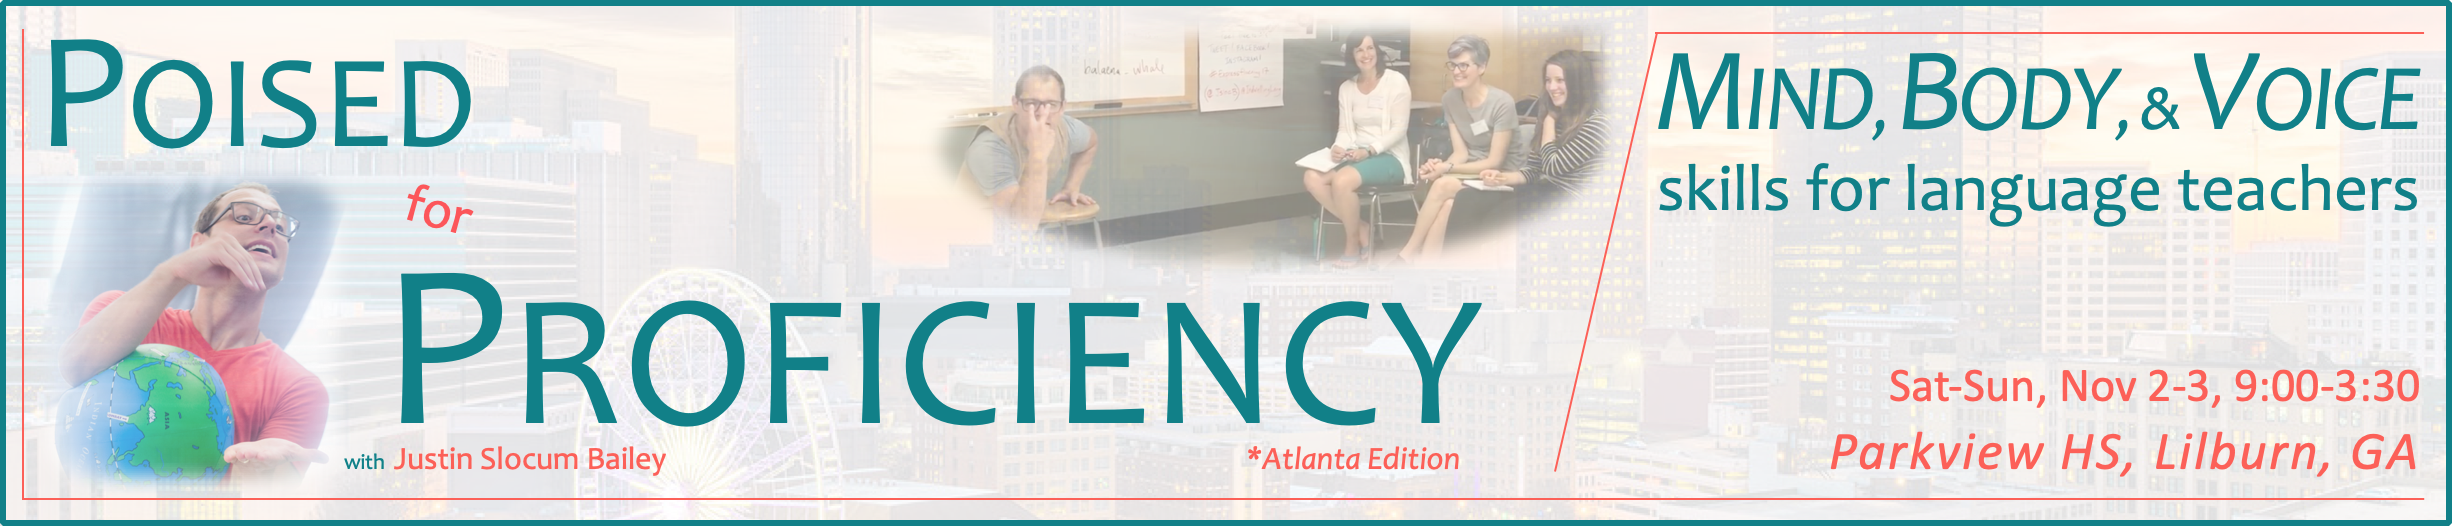 Poised for Proficiency Atlanta banner banner image - November 2-3, 2019